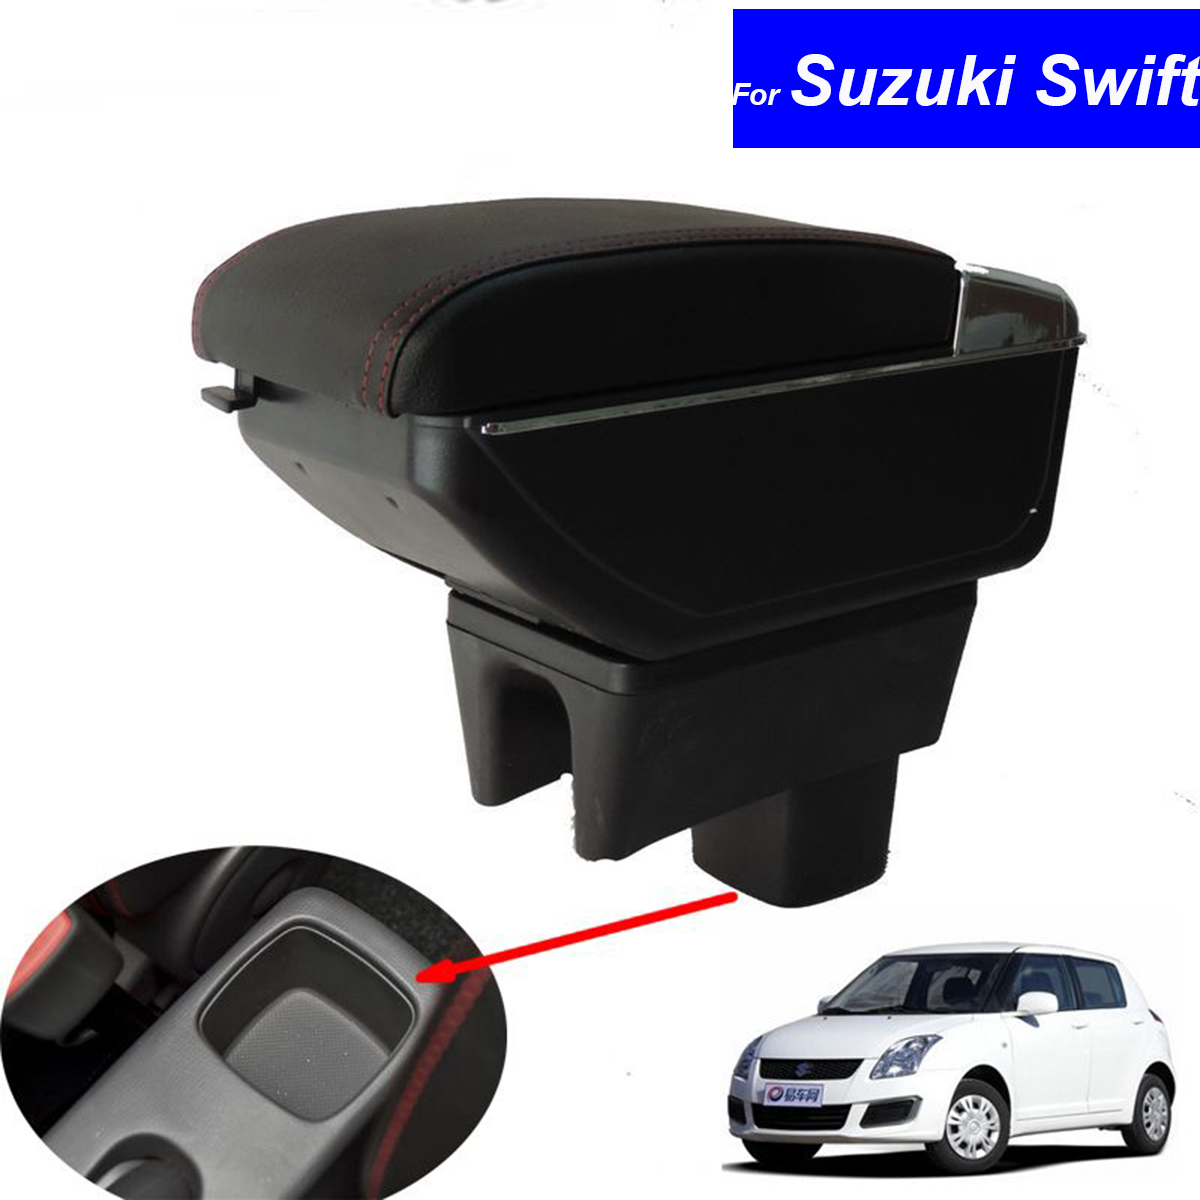 Leather Car Center Console Armrest Box for Suzuki Swift 2008 2009 2010 2011 2012 2013 2014 2015 2016 Armrests Free Shipping 翻轉 貓 砂 盆